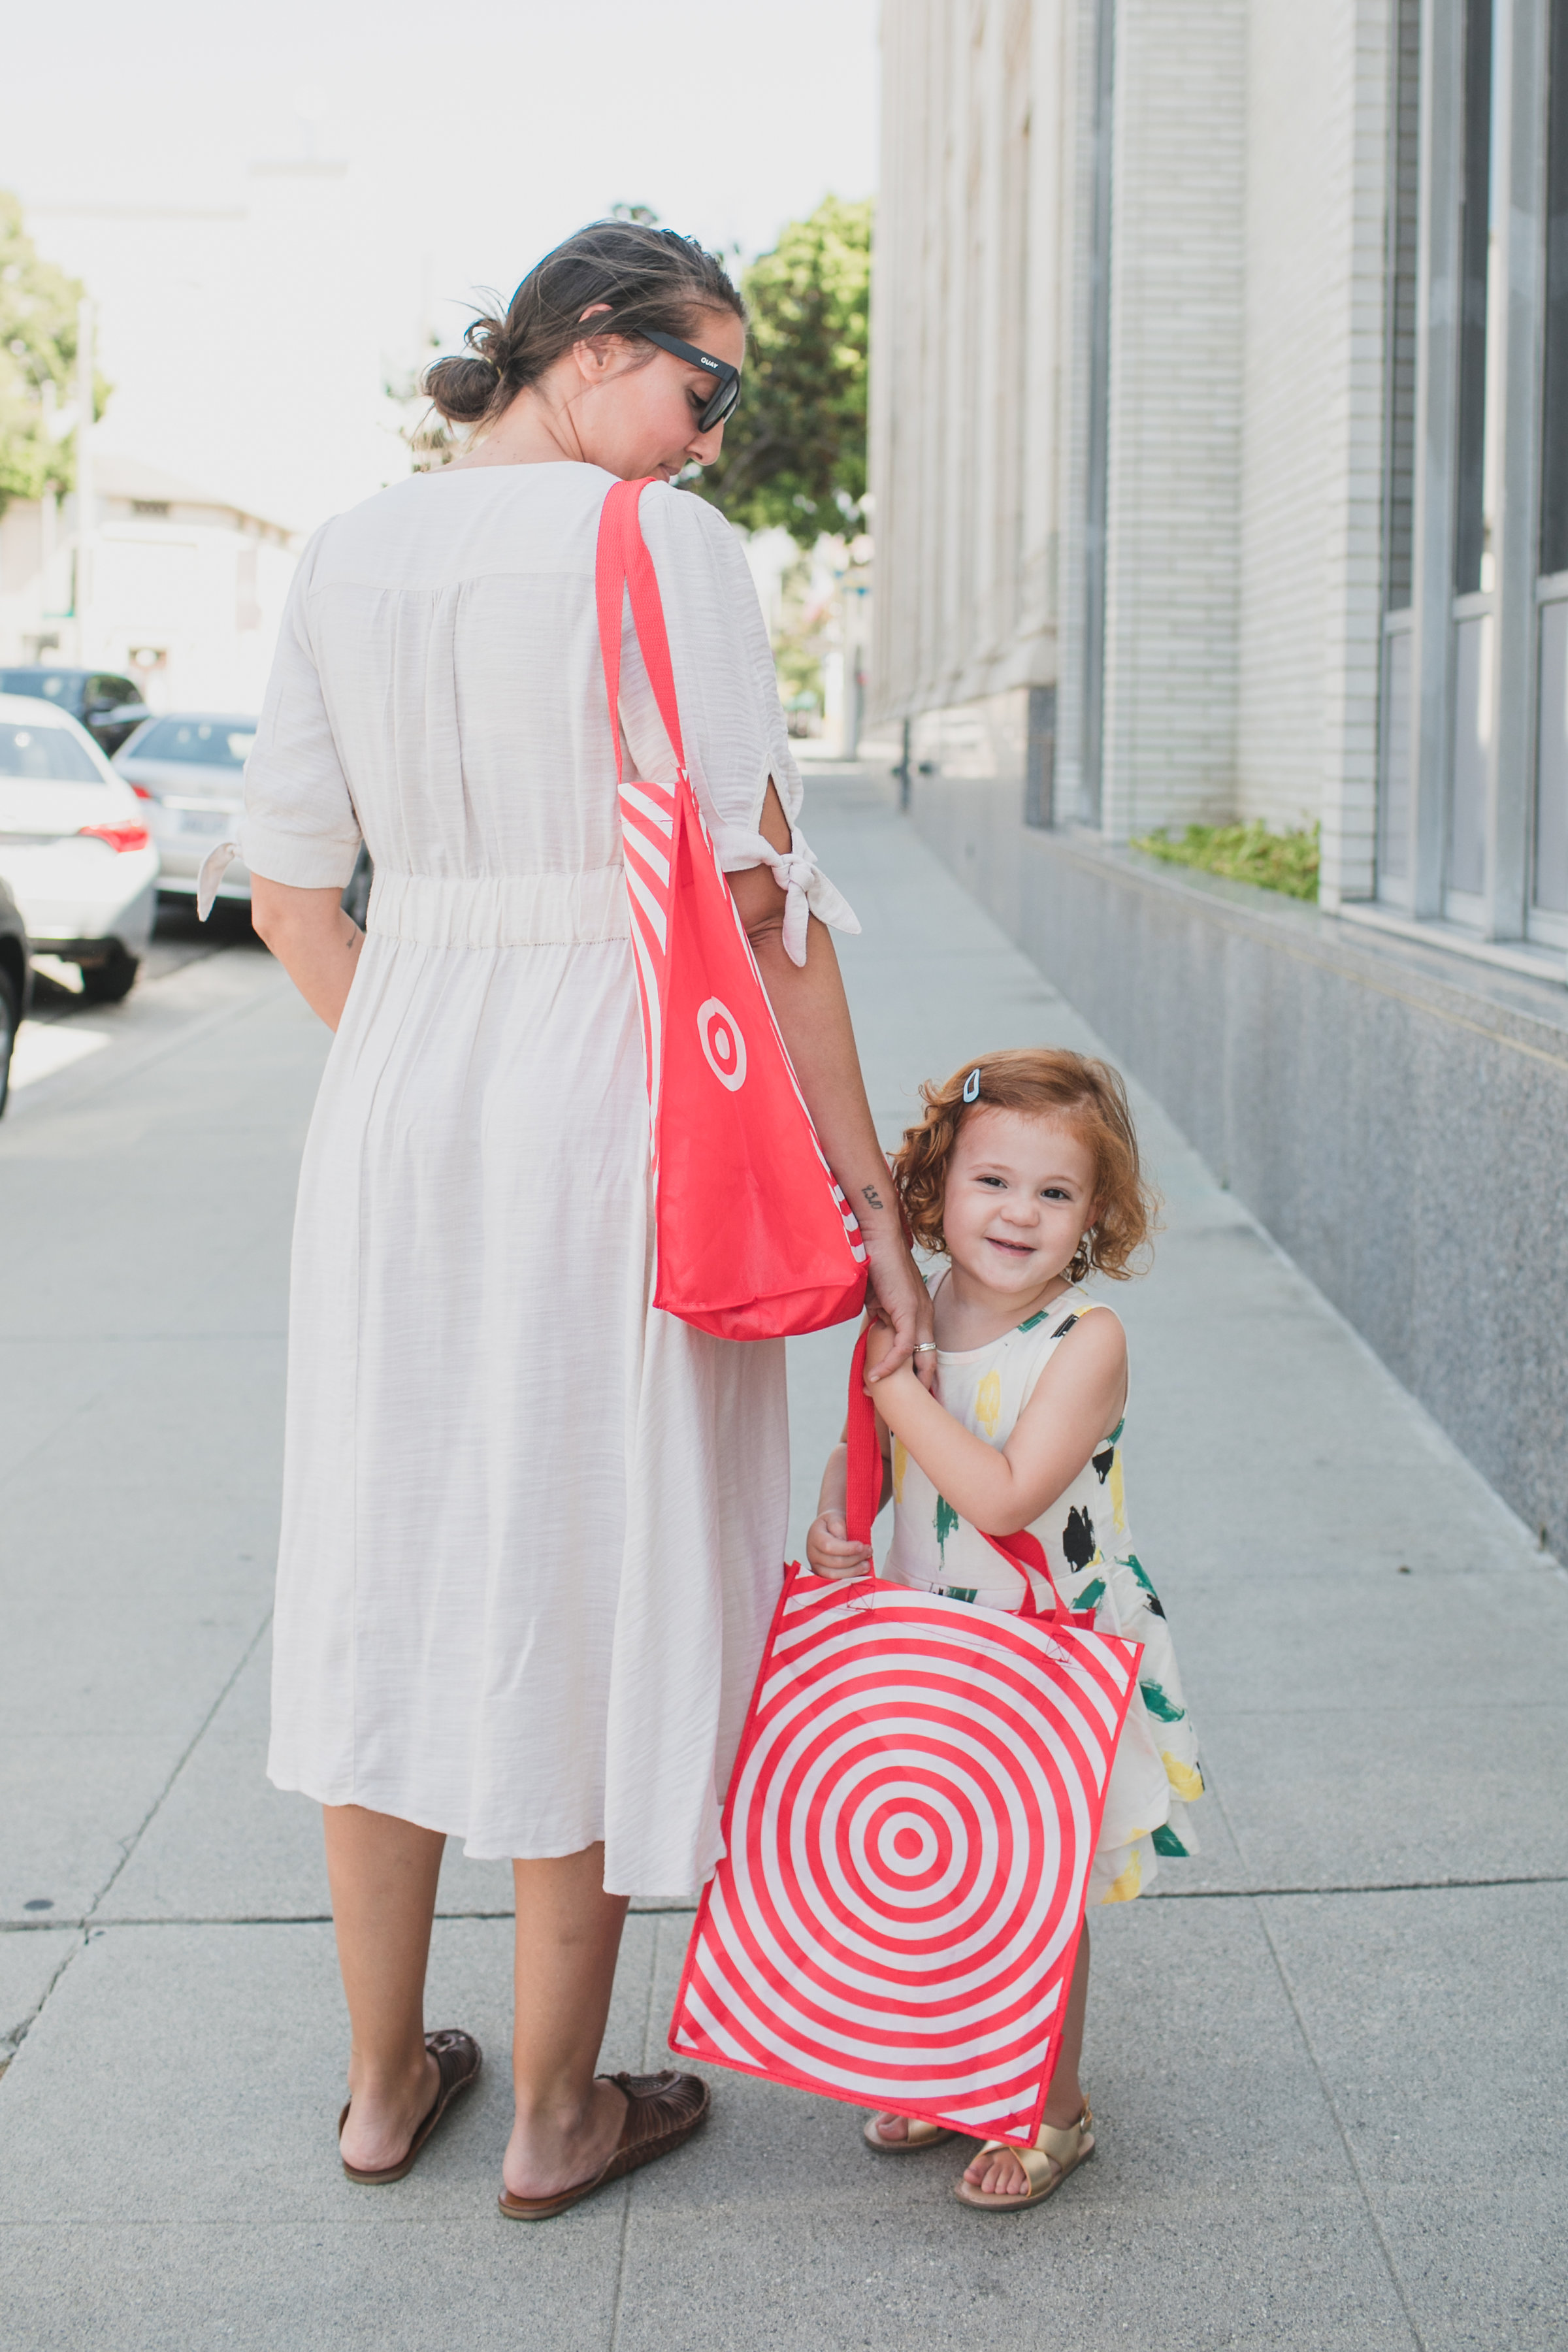 Baby_Boy_Bakery_Target_Lily_Ro_Photography-2319.jpg